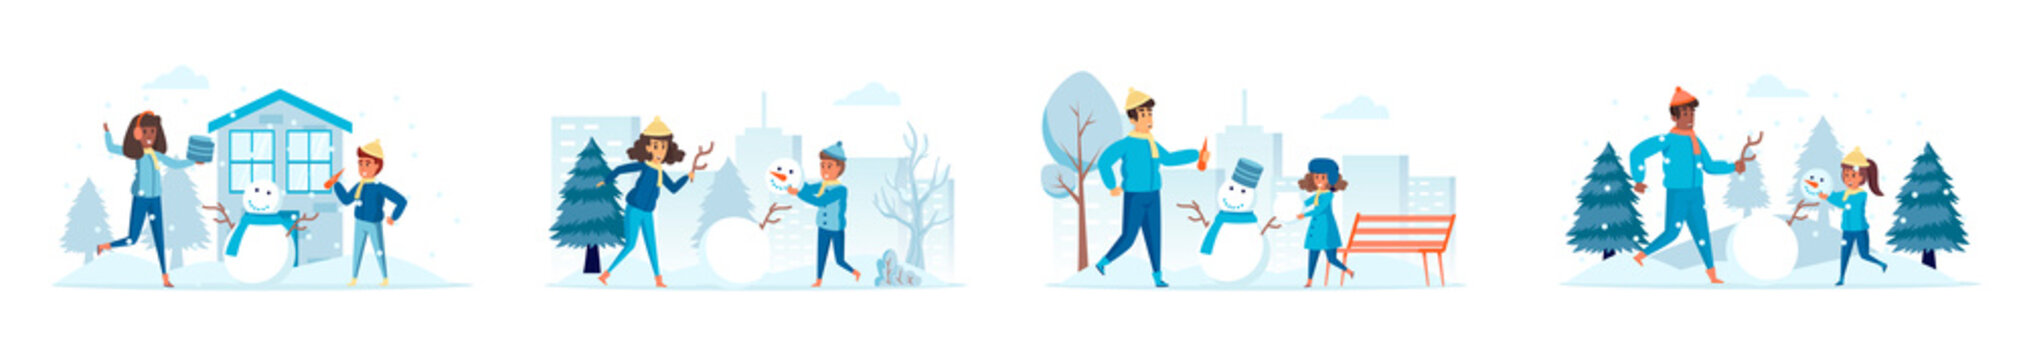 Building snowman bundle of scenes with flat people characters. Parents with kids making snowman outdoors at snowfall conceptual situations. Wintertime holidays vacation cartoon vector illustration.